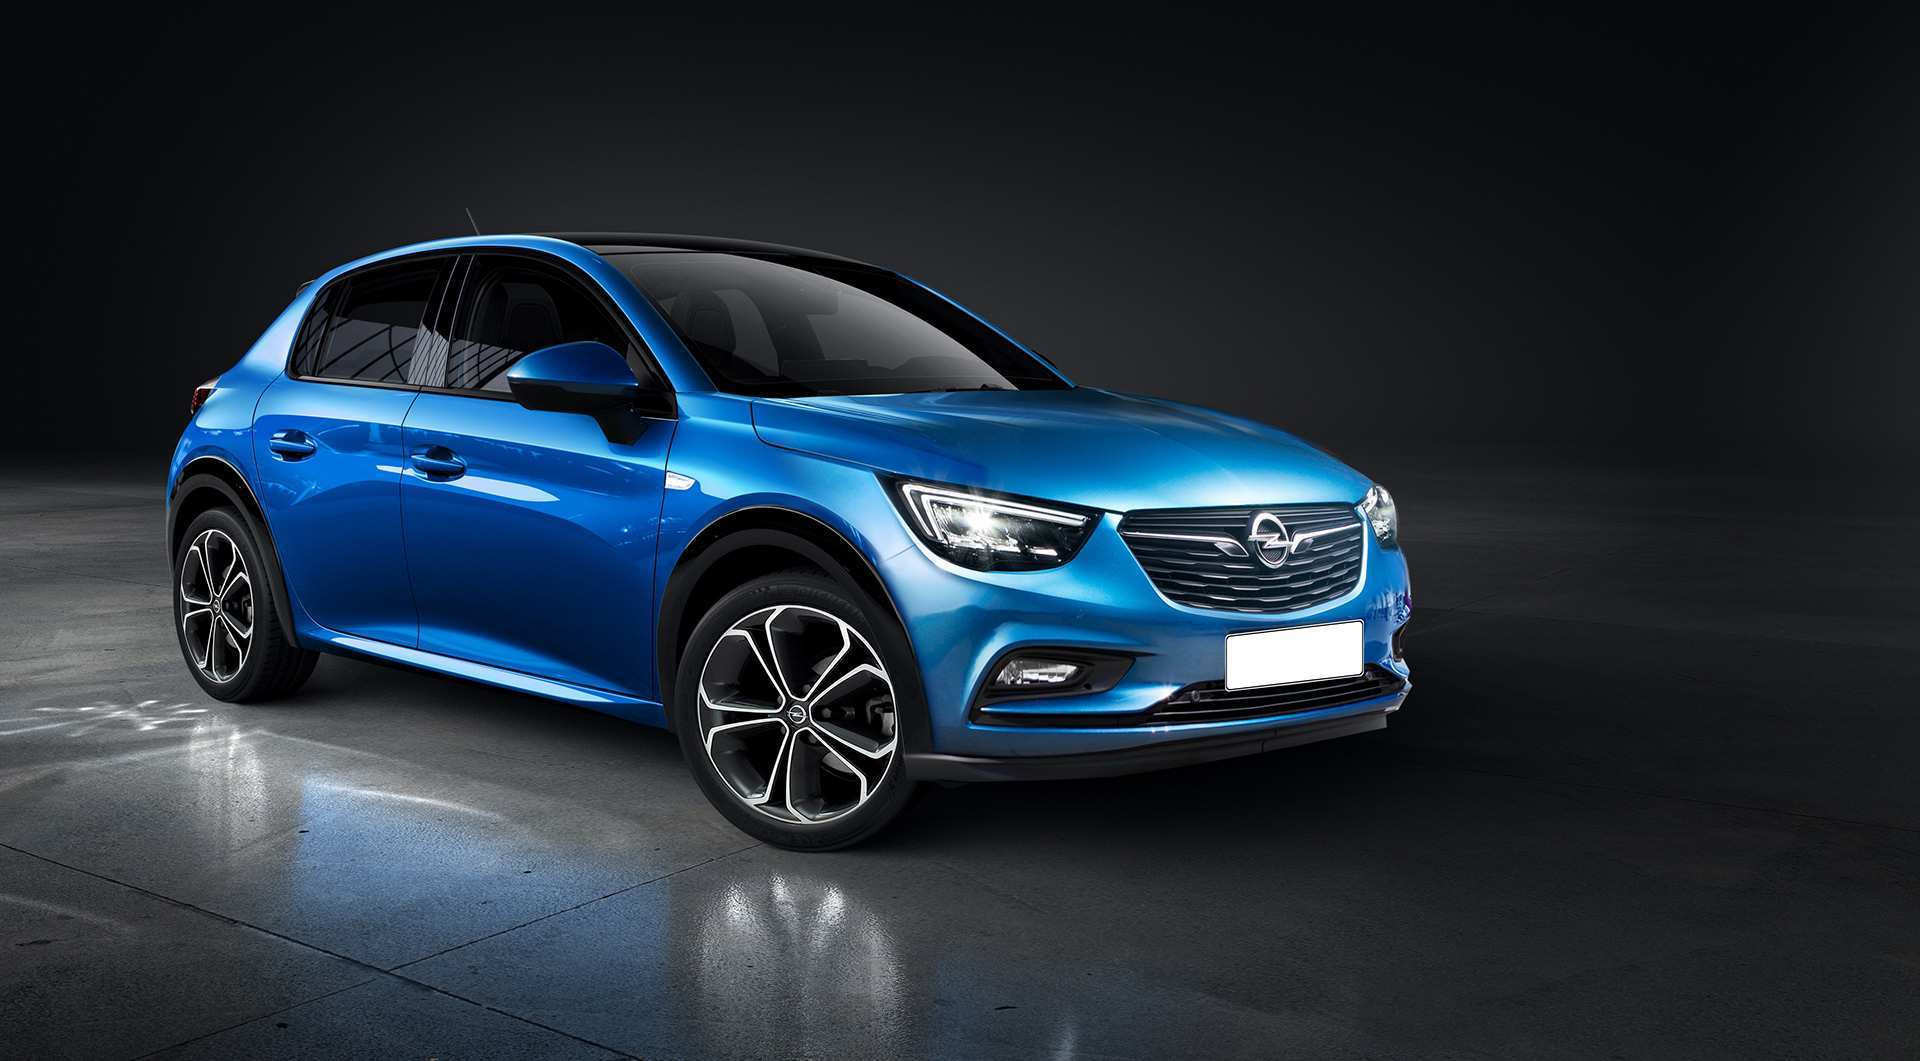 53 New Opel Corsa F 2020 Configurations